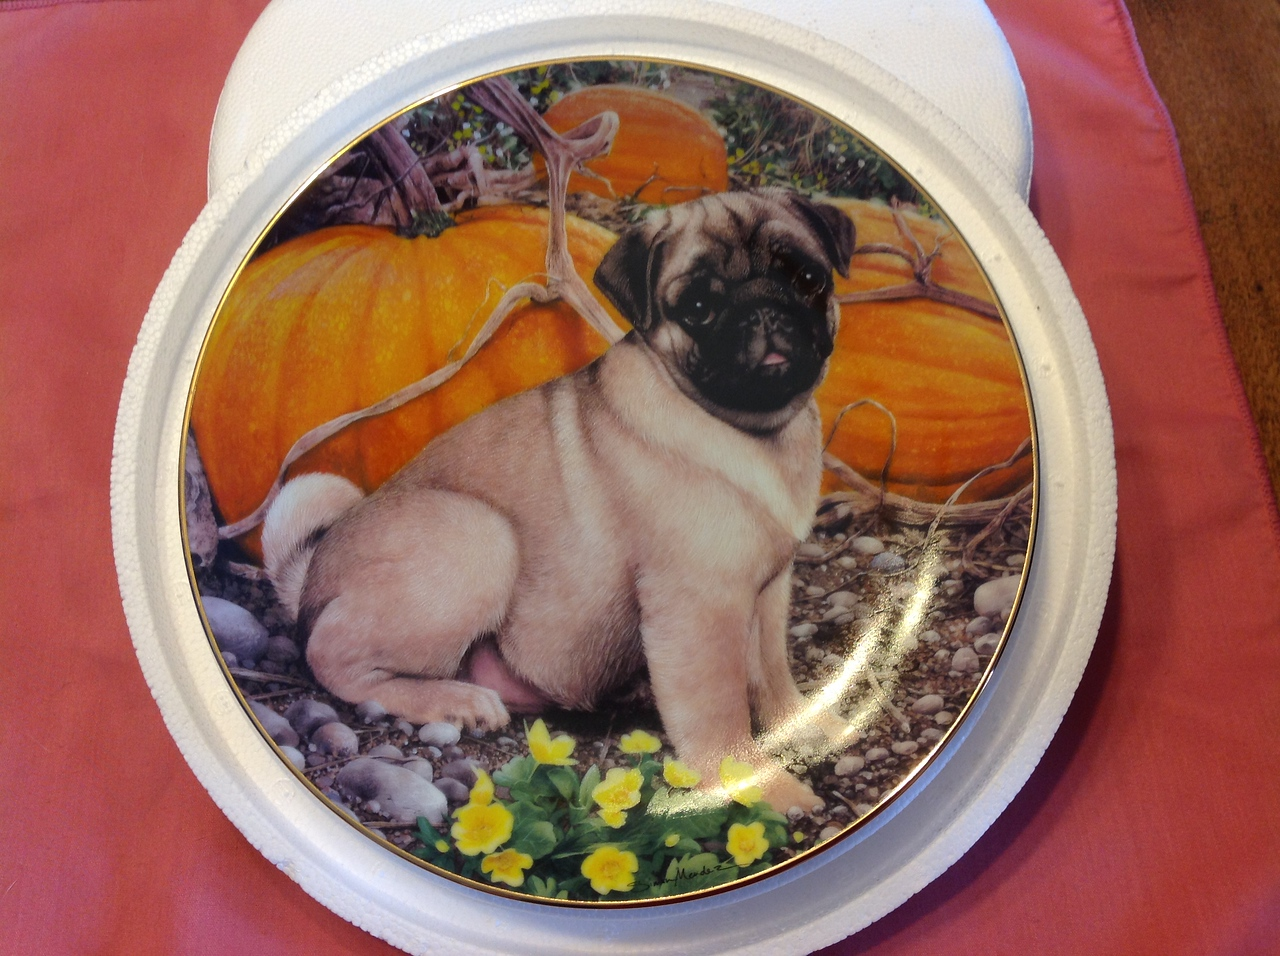 """Danbury Mint Plate """"Pumpkin Patch Pug"""" by Simon Mendez from Pugs Collection. Plate # C6430.<br /> <br /> Winner pays shipping.<br /> <br /> Starting bid $10"""